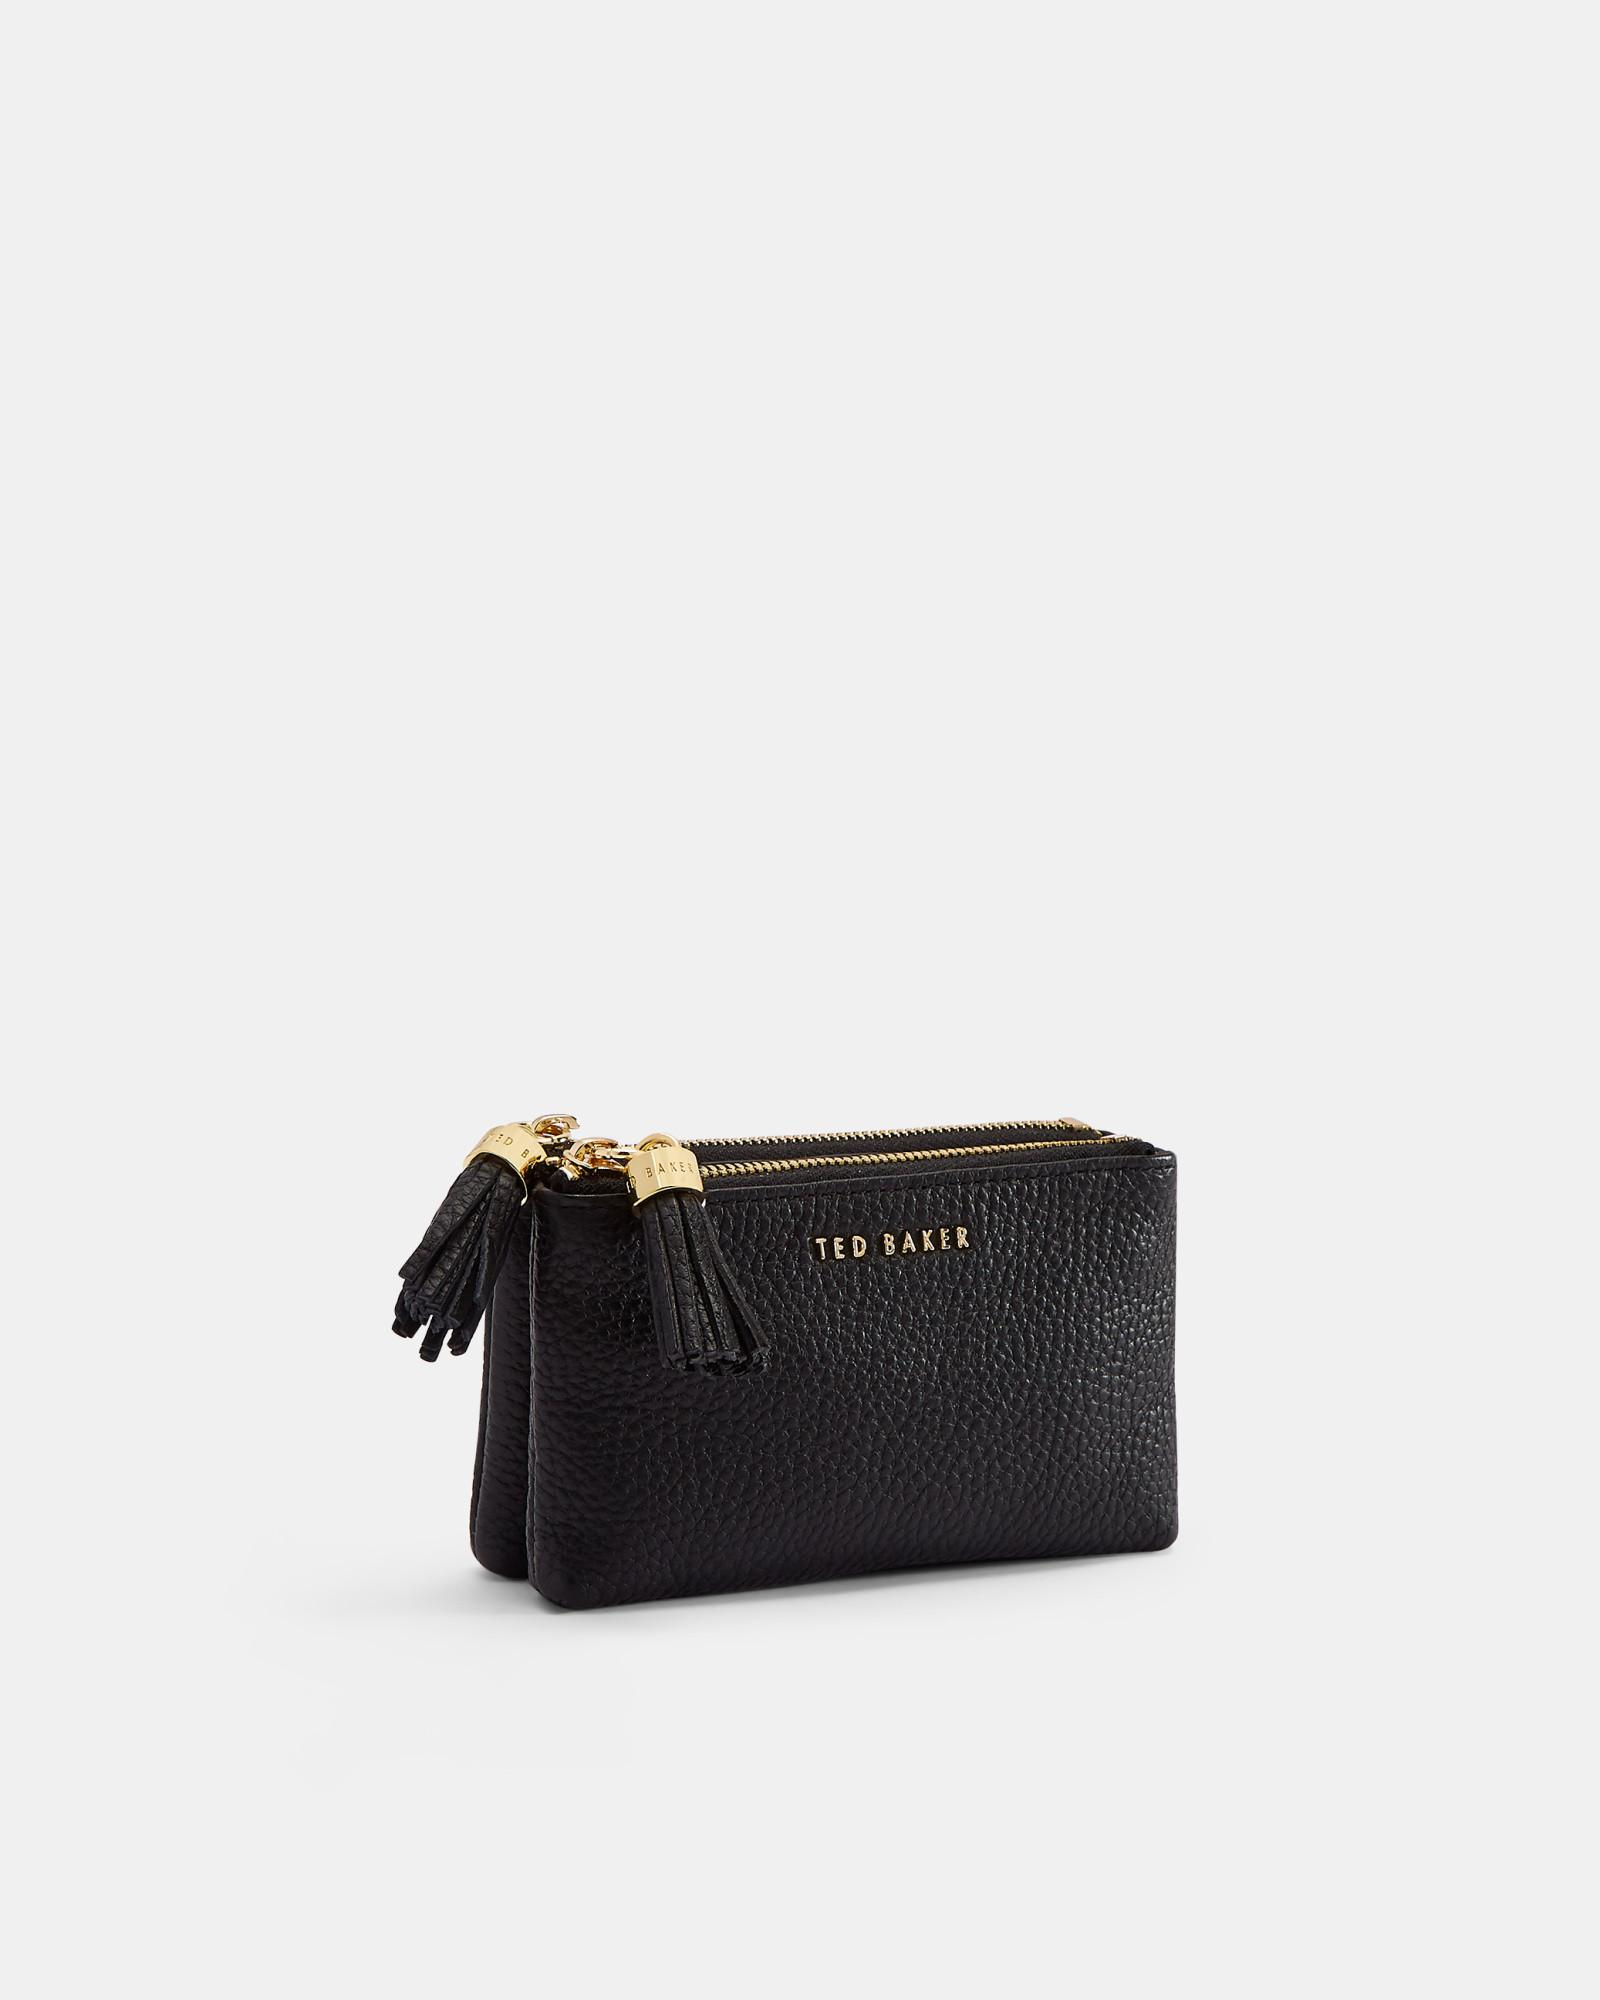 0b68477bc0334d Ted Baker Black Leather Wallet With Coin Pocket - Best Photo Wallet ...